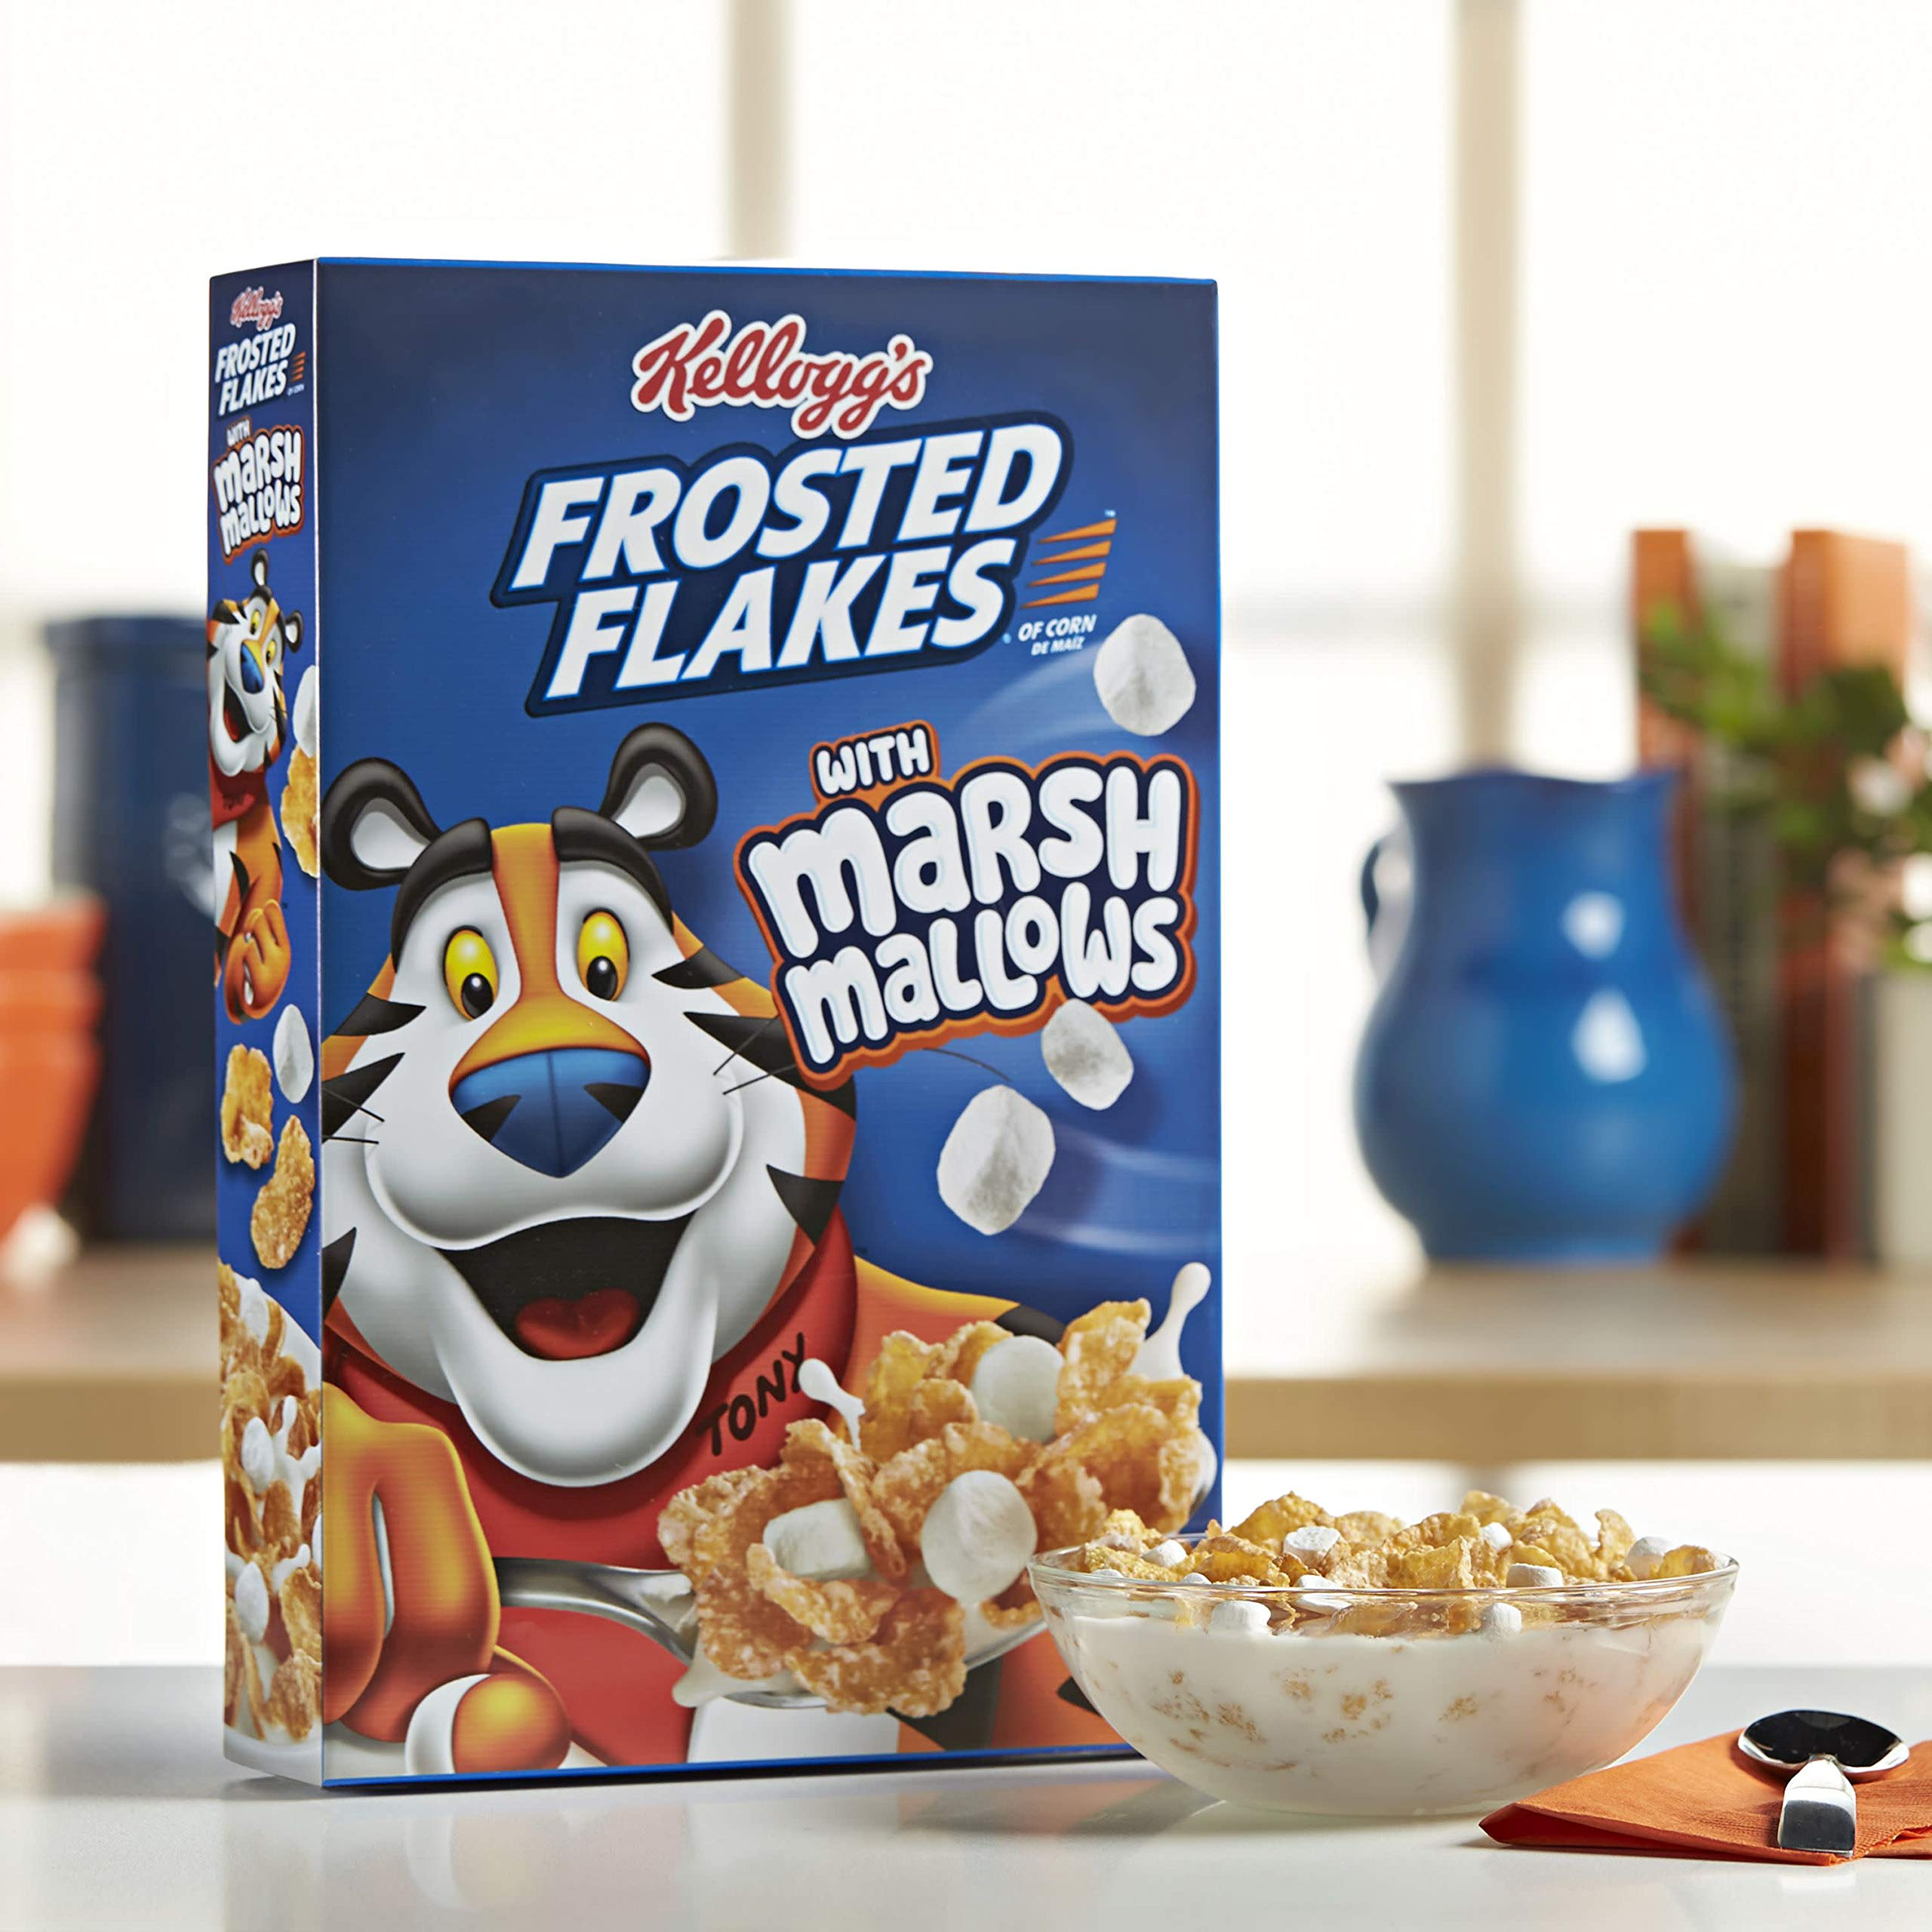 Kellogg's Breakfast Cereal, Frosted Flakes with Marshmallow, 13.6 oz Box(Pack of 12) by Kellogg's (Image #5)